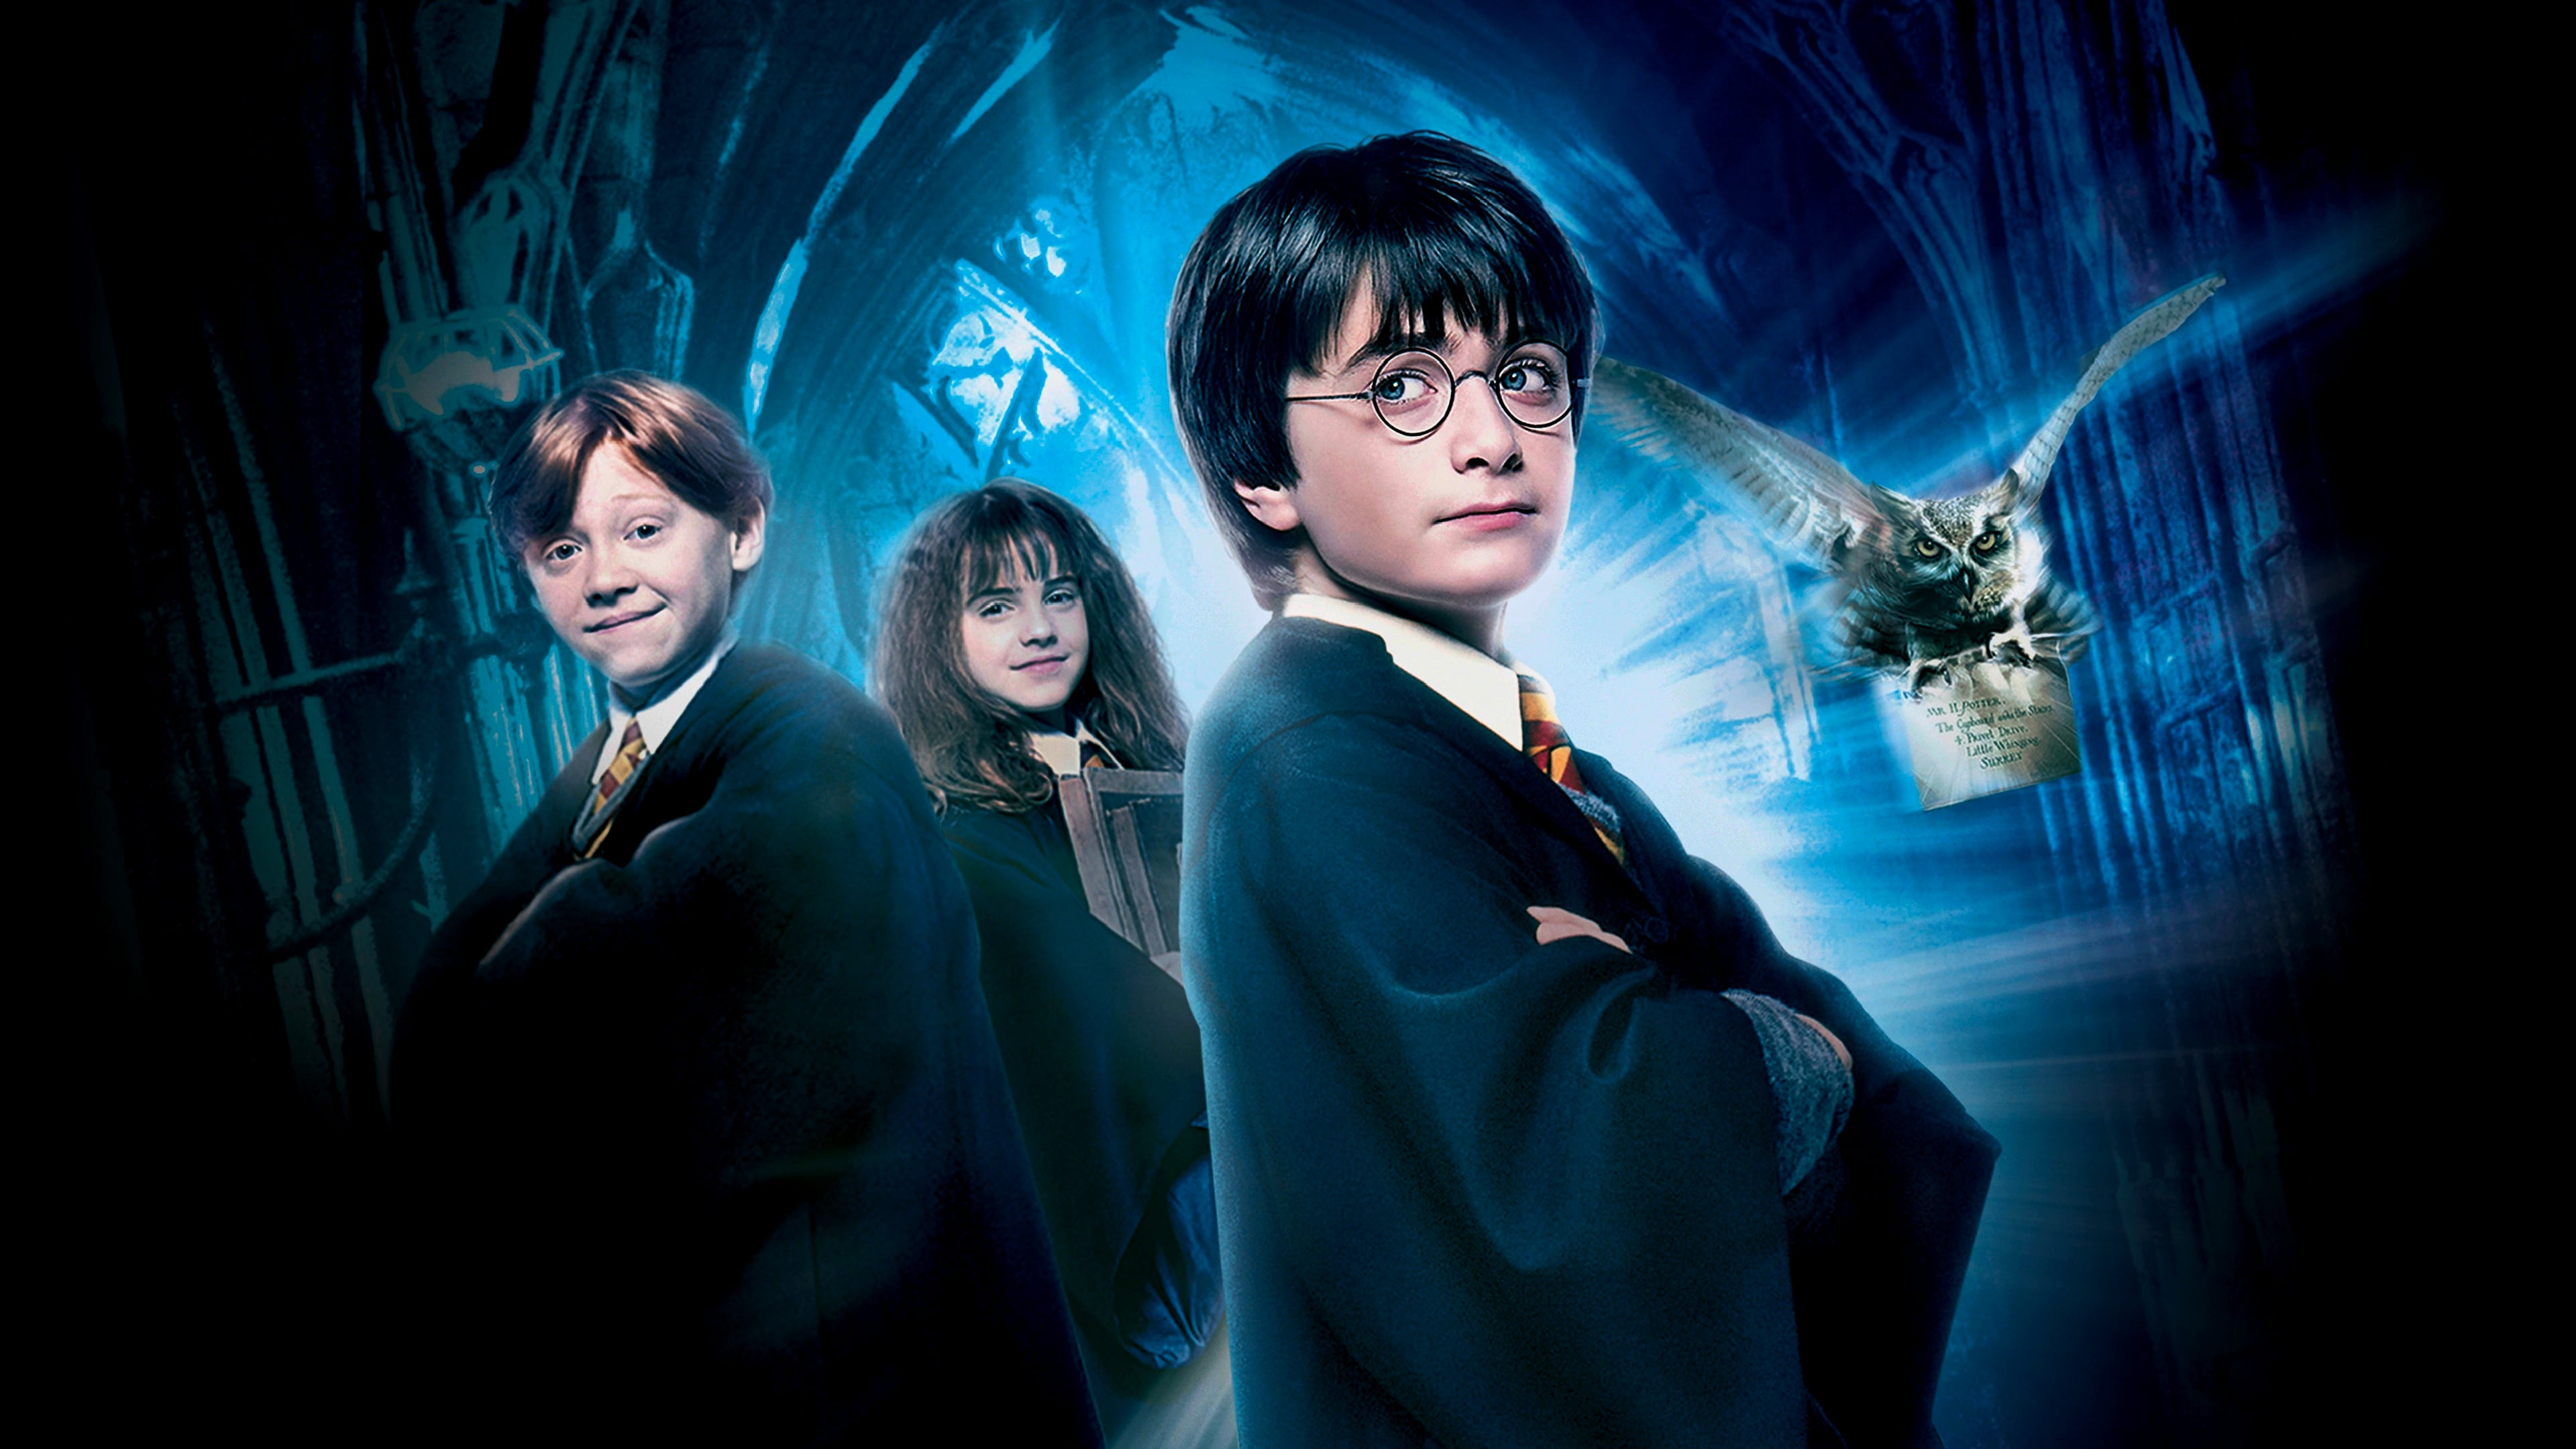 Legenda Harry Potter and the Philosopher's Stone